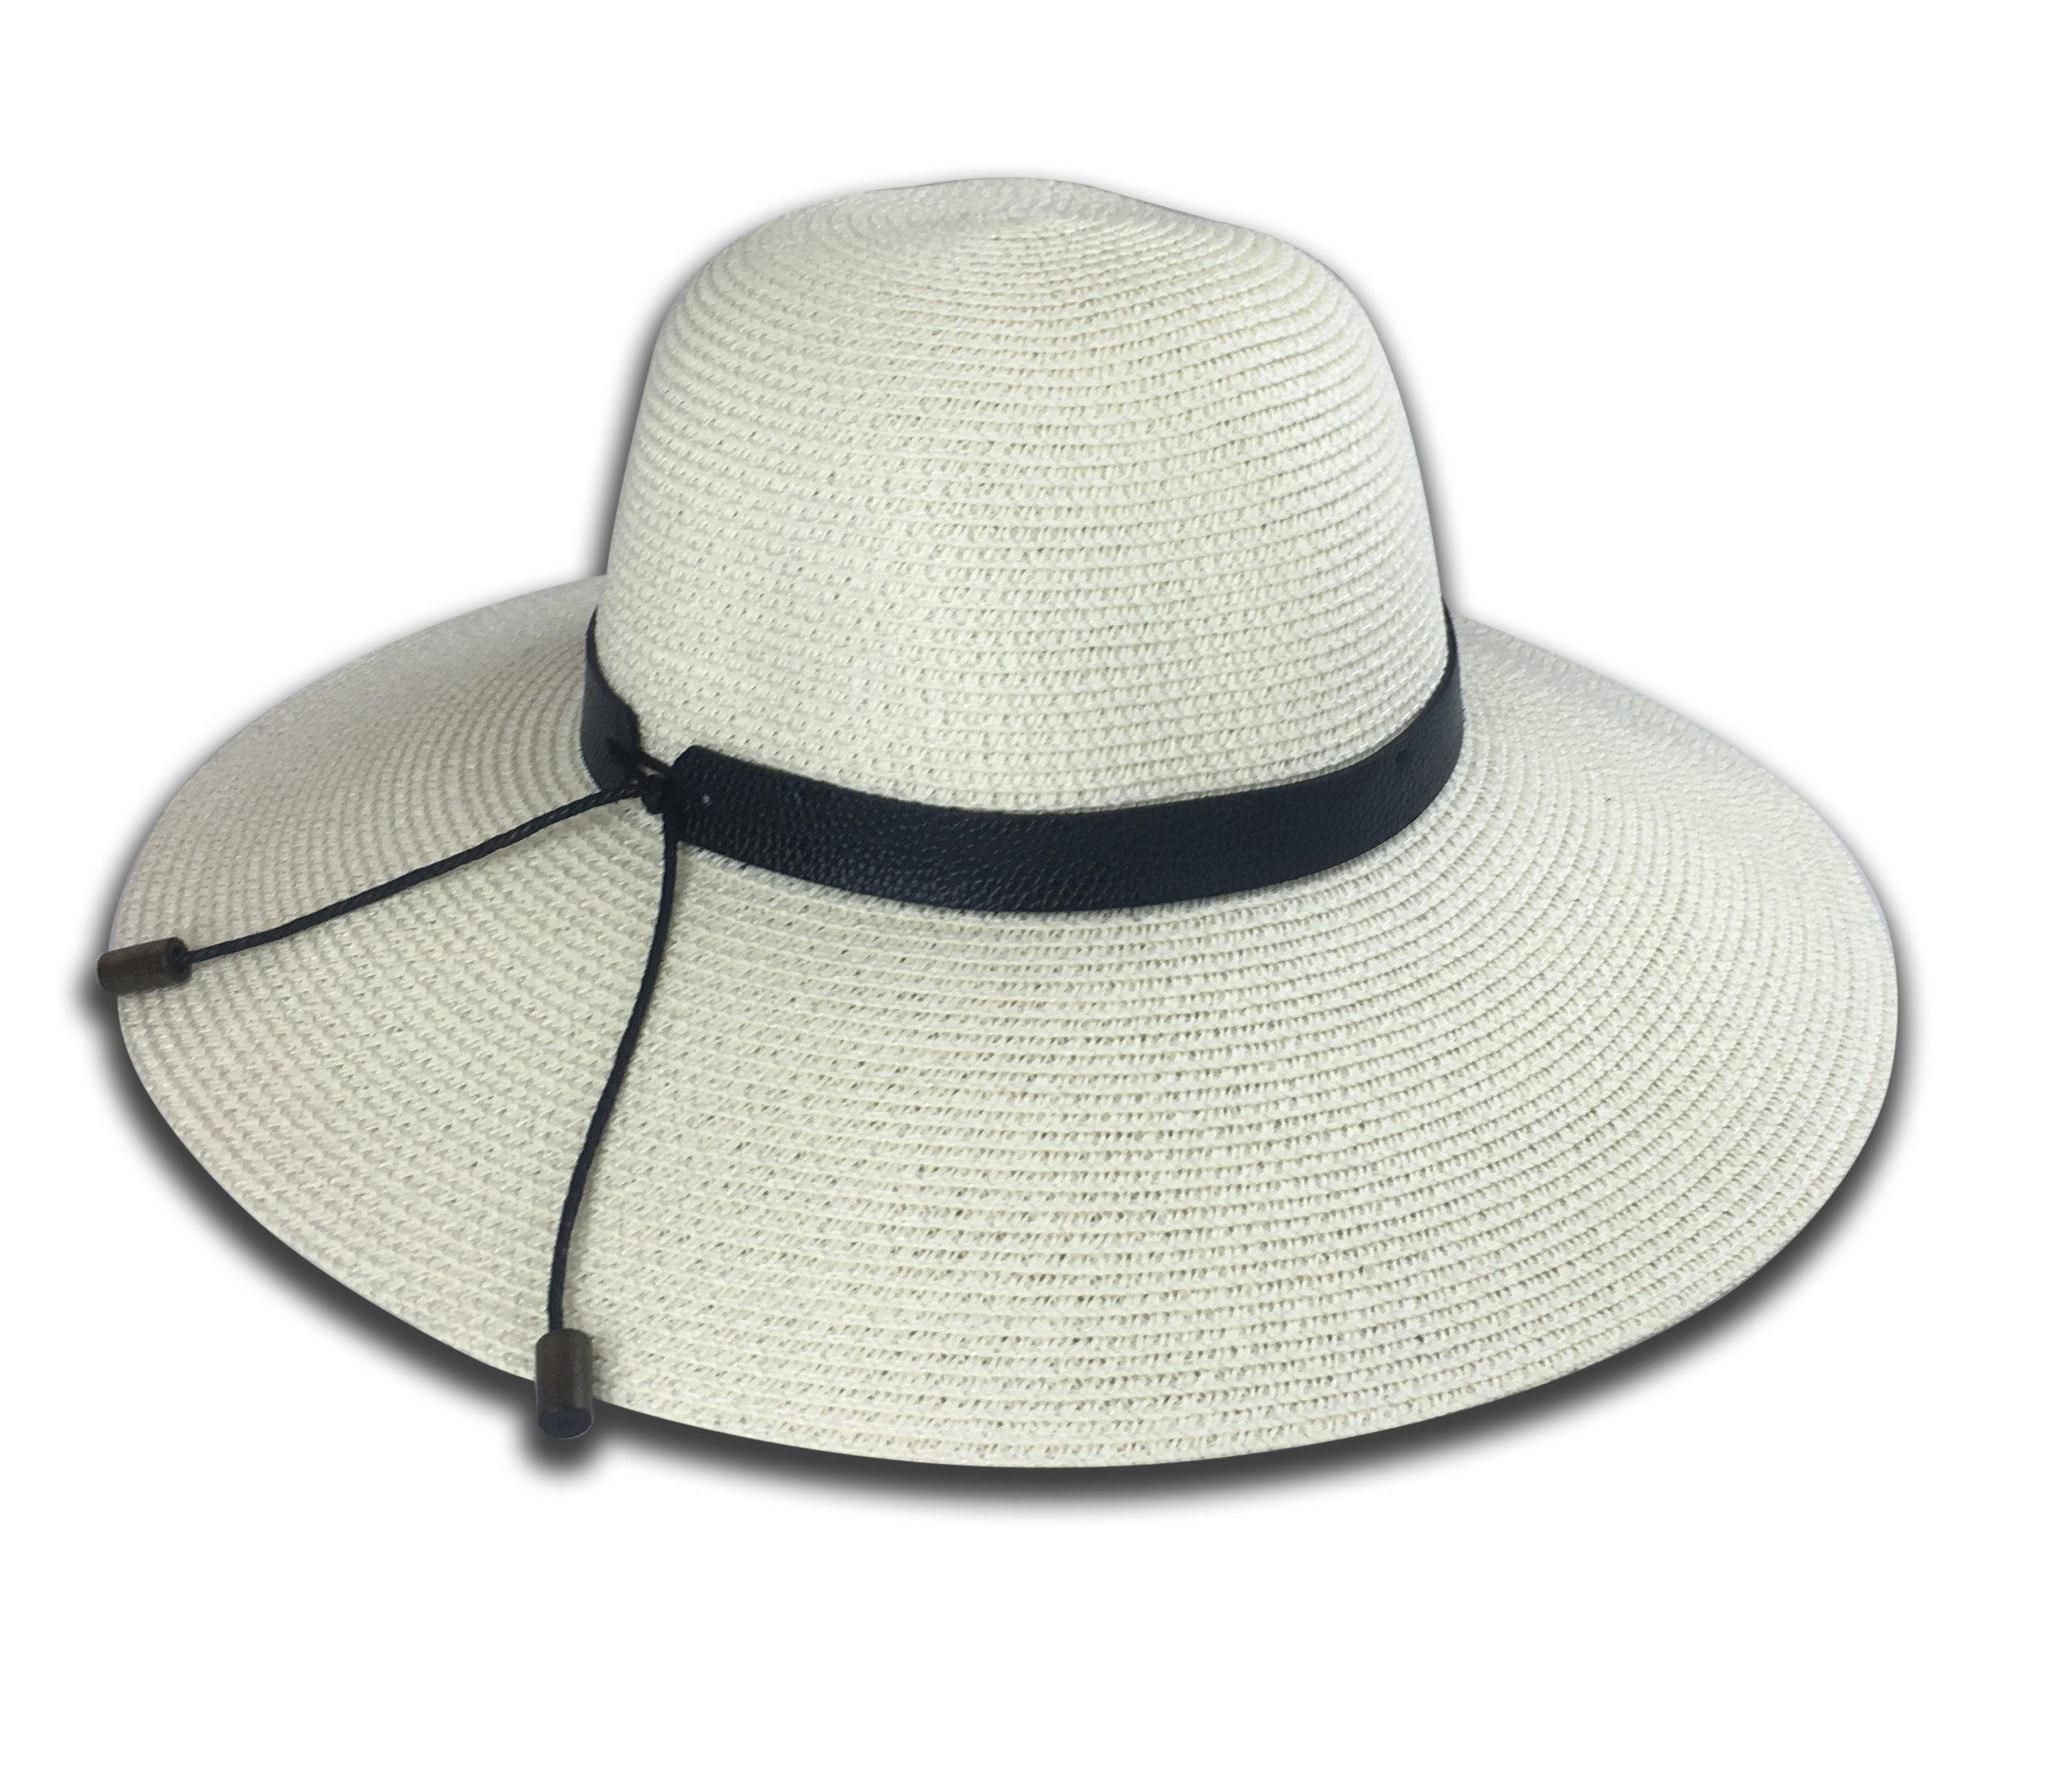 5c9816e60 Women's Packable Straw Hat, Wide Brim with Lanyard, Maximum Sun ...